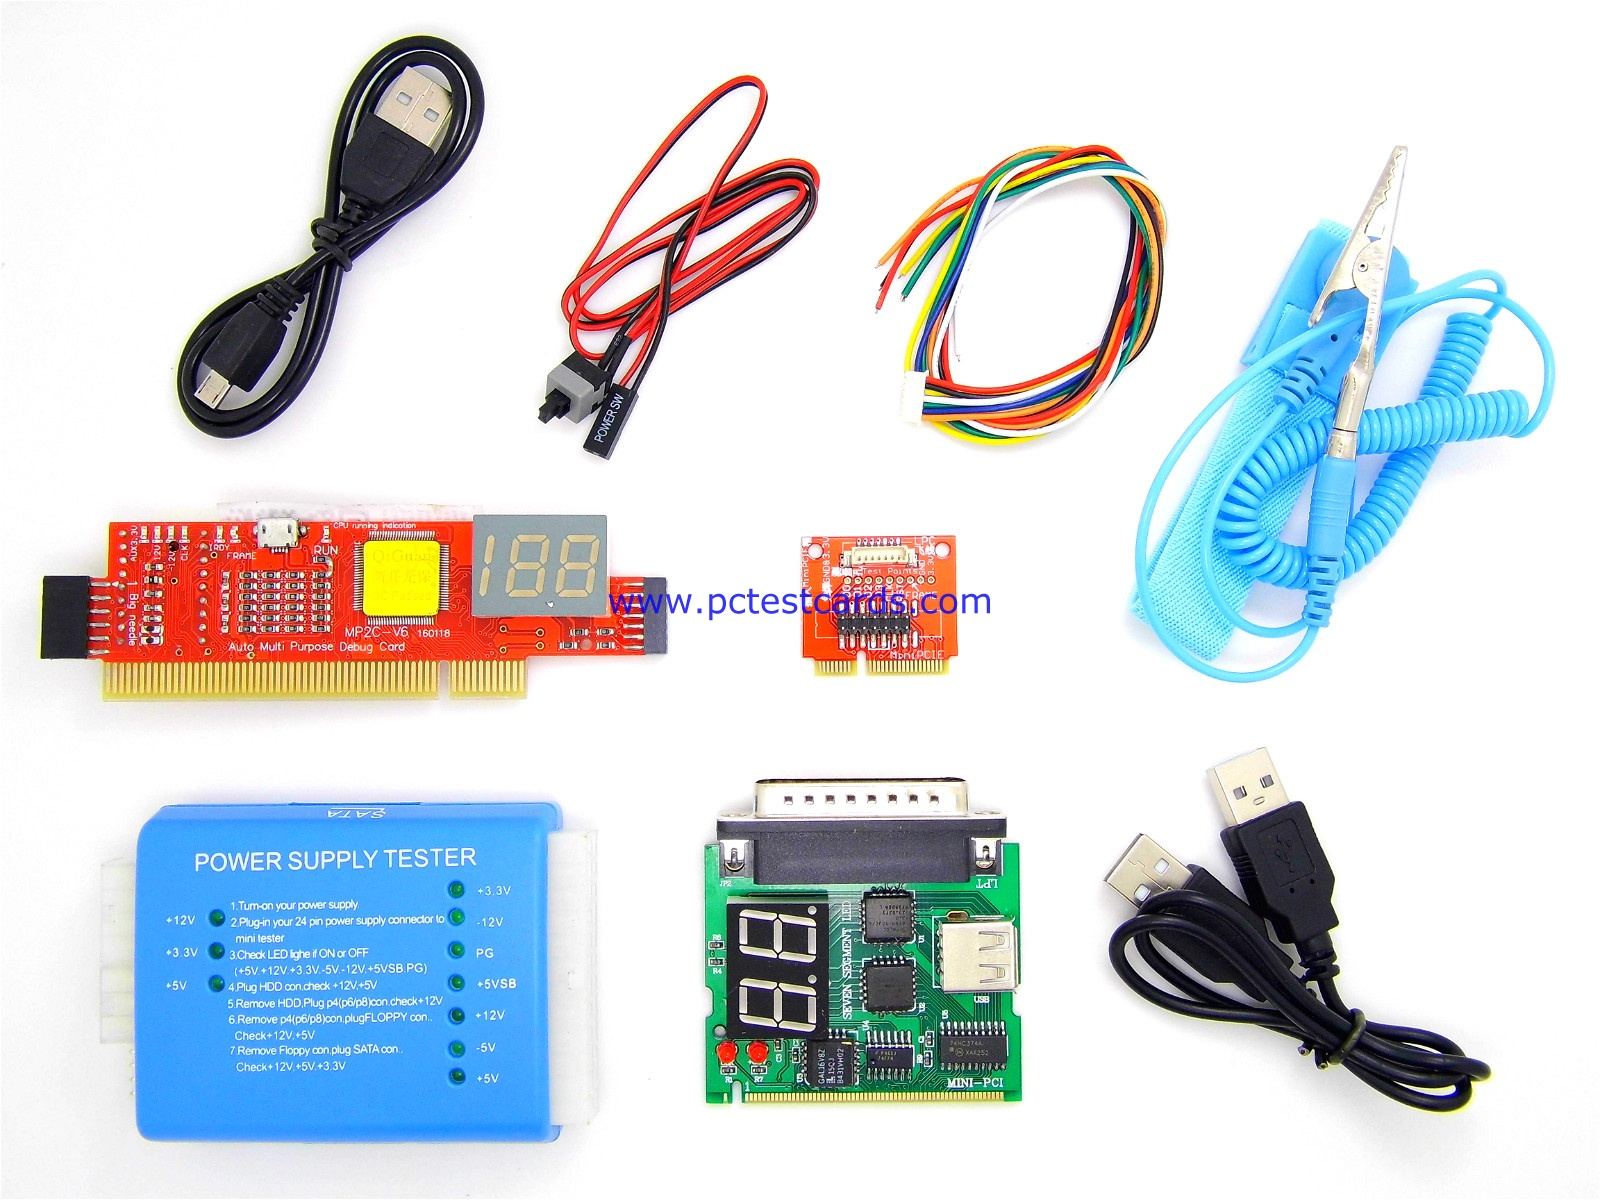 New Complete Essential PC Laptop Motherboard & Power PSU Repair Diagnostic Analyze POST Test Tool kit